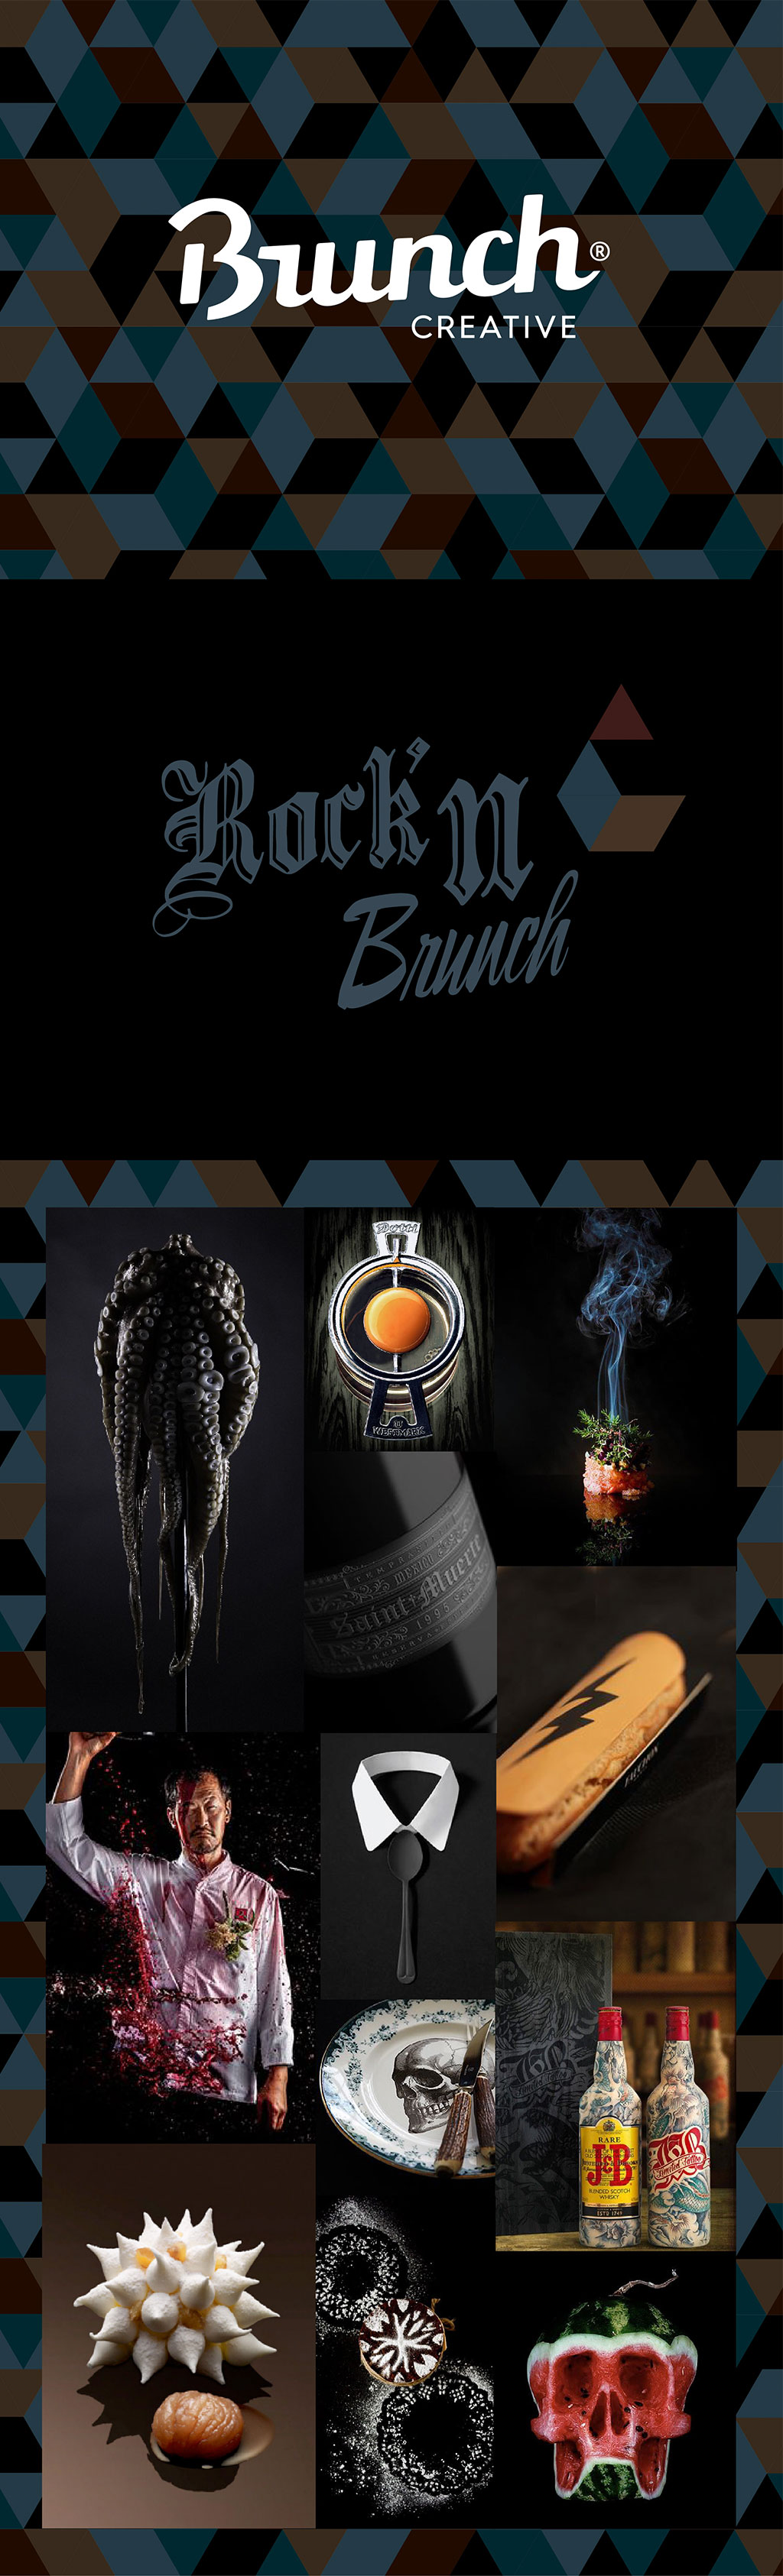 Board Rock & Brunch - Pinterest